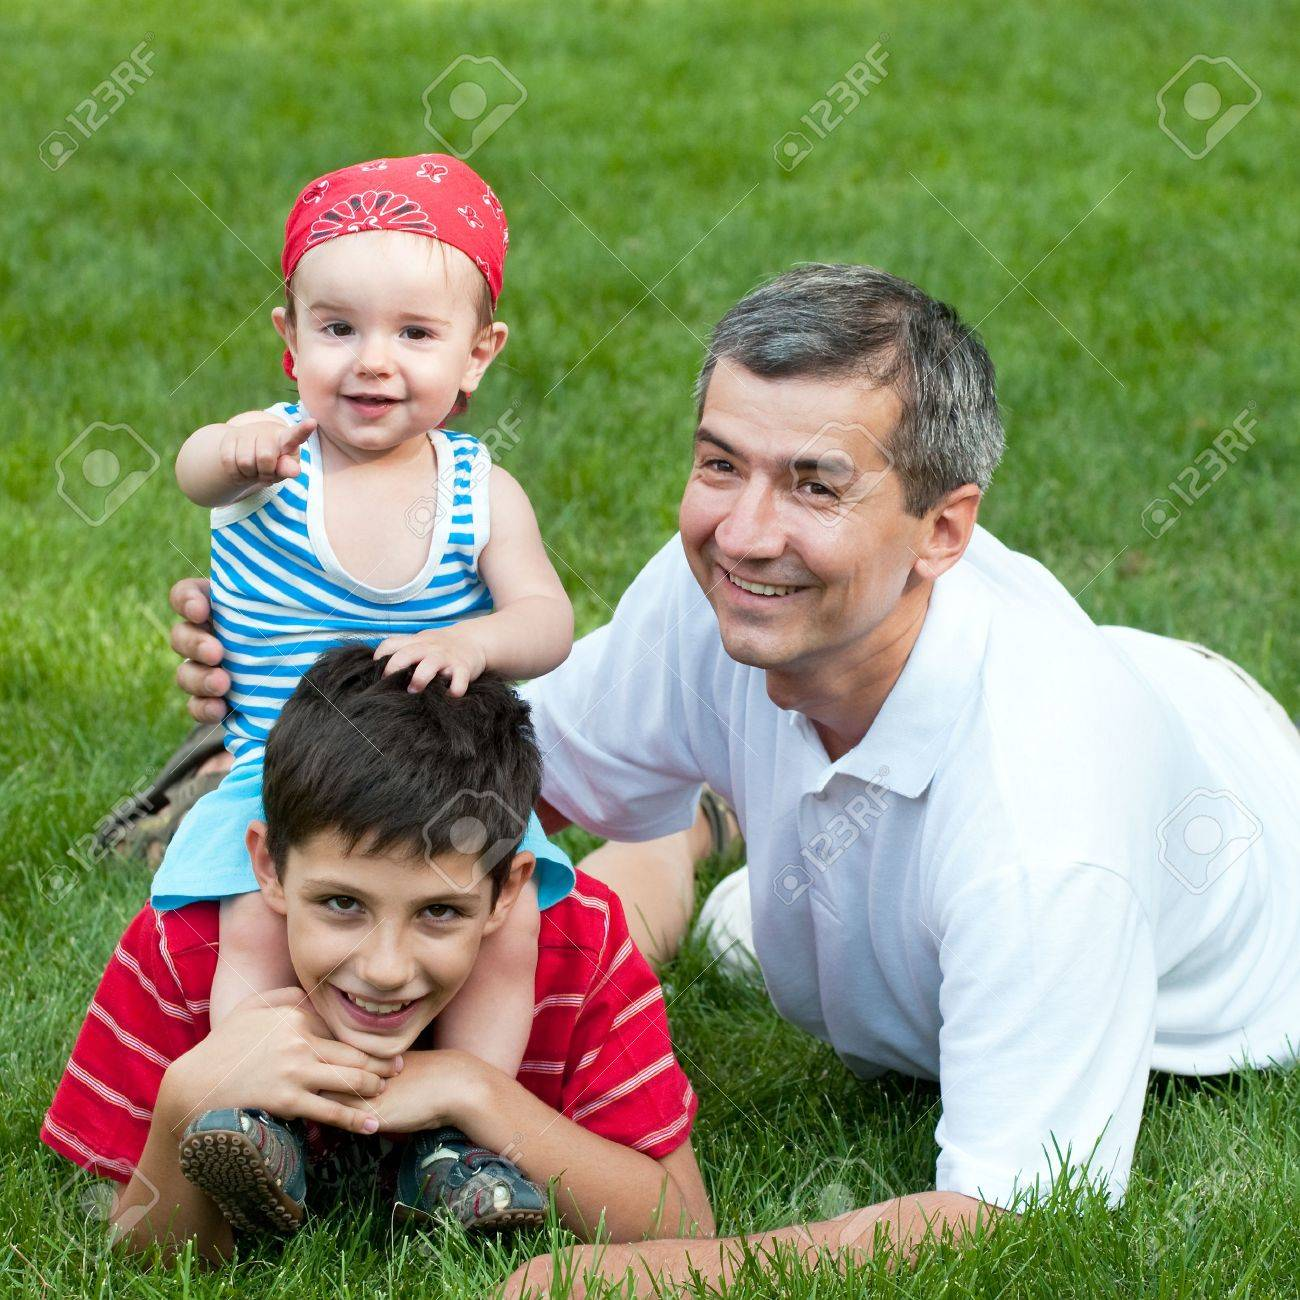 A father and his sons are playing on the grass in the park